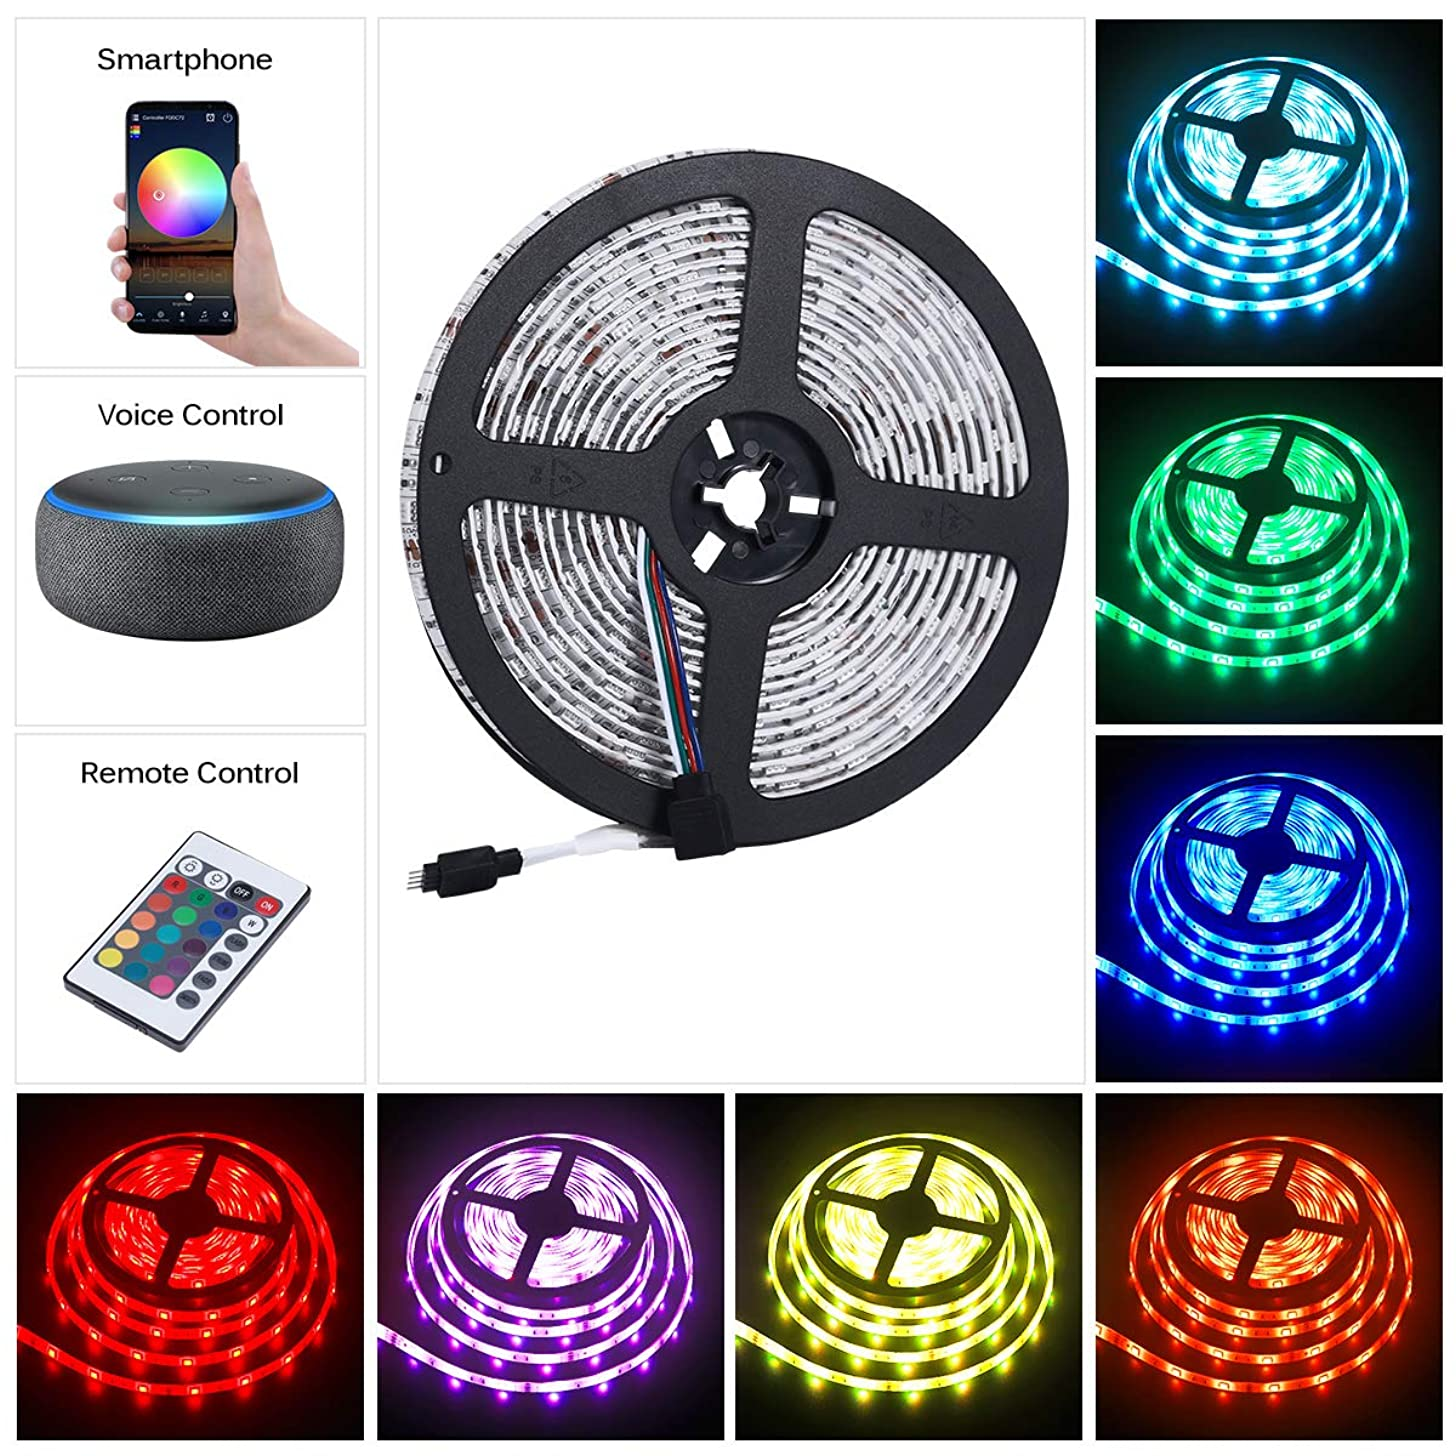 YUNLIGHTS LED Strip Lights, WiFi Wireless Smart Phone Controlled Light Strip IP65 Waterproof, 16.4ft Flexible Color Changing RGB LED Strips with IR Remote Controller 12V 5A Power Supply